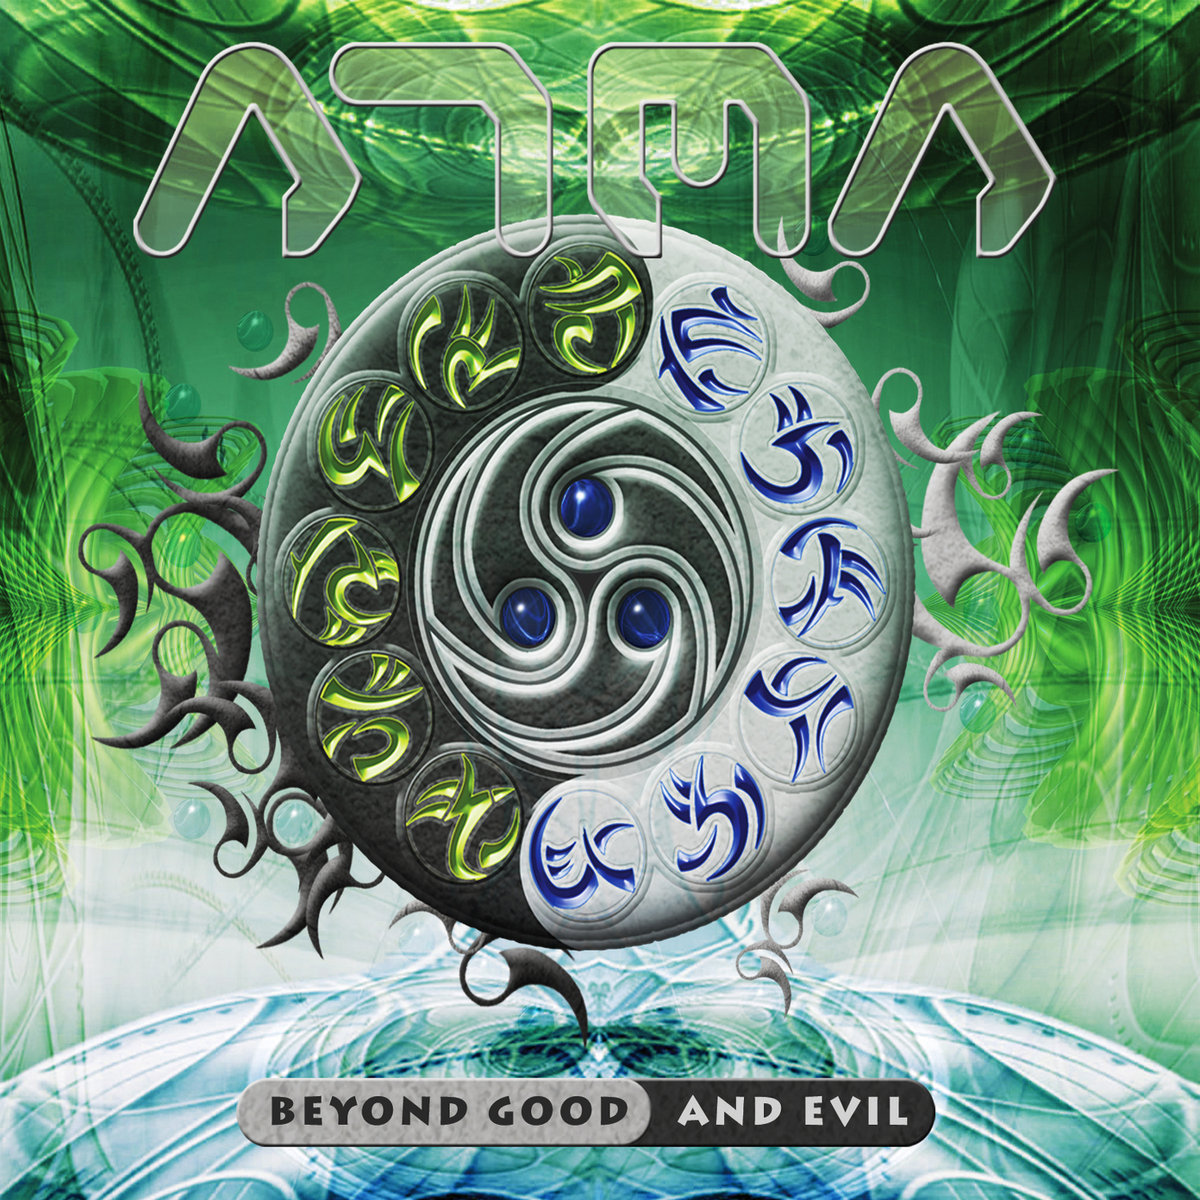 Atma - Beyond Good & Evil @ 'Beyond Good and Evil' album (electronic, goa)